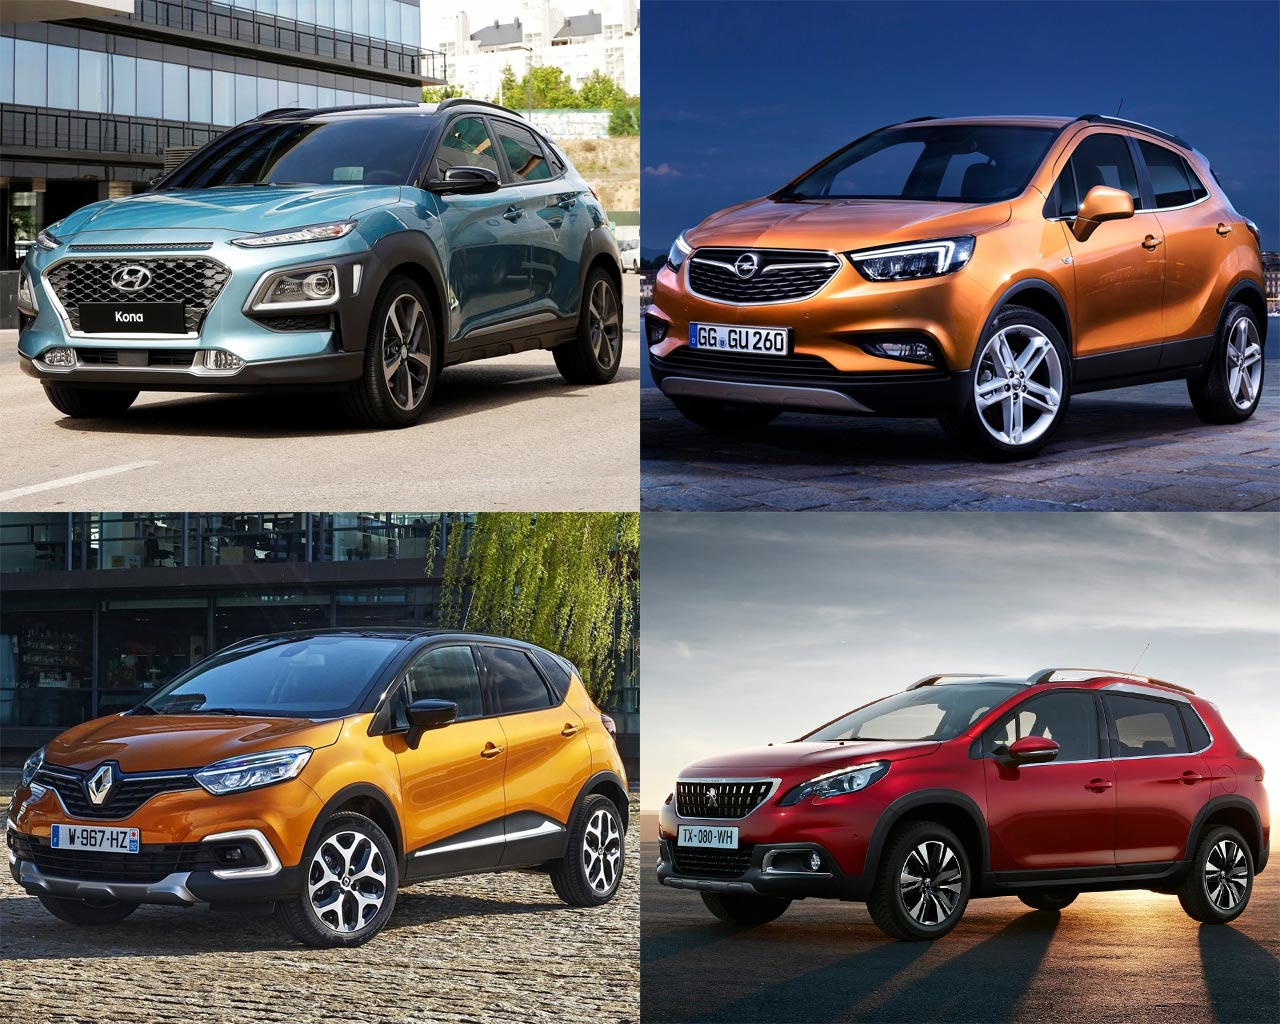 hyundai kona vs renault captur vs peugeot 3008 vs vauxhall mokka x opel moka x front three. Black Bedroom Furniture Sets. Home Design Ideas